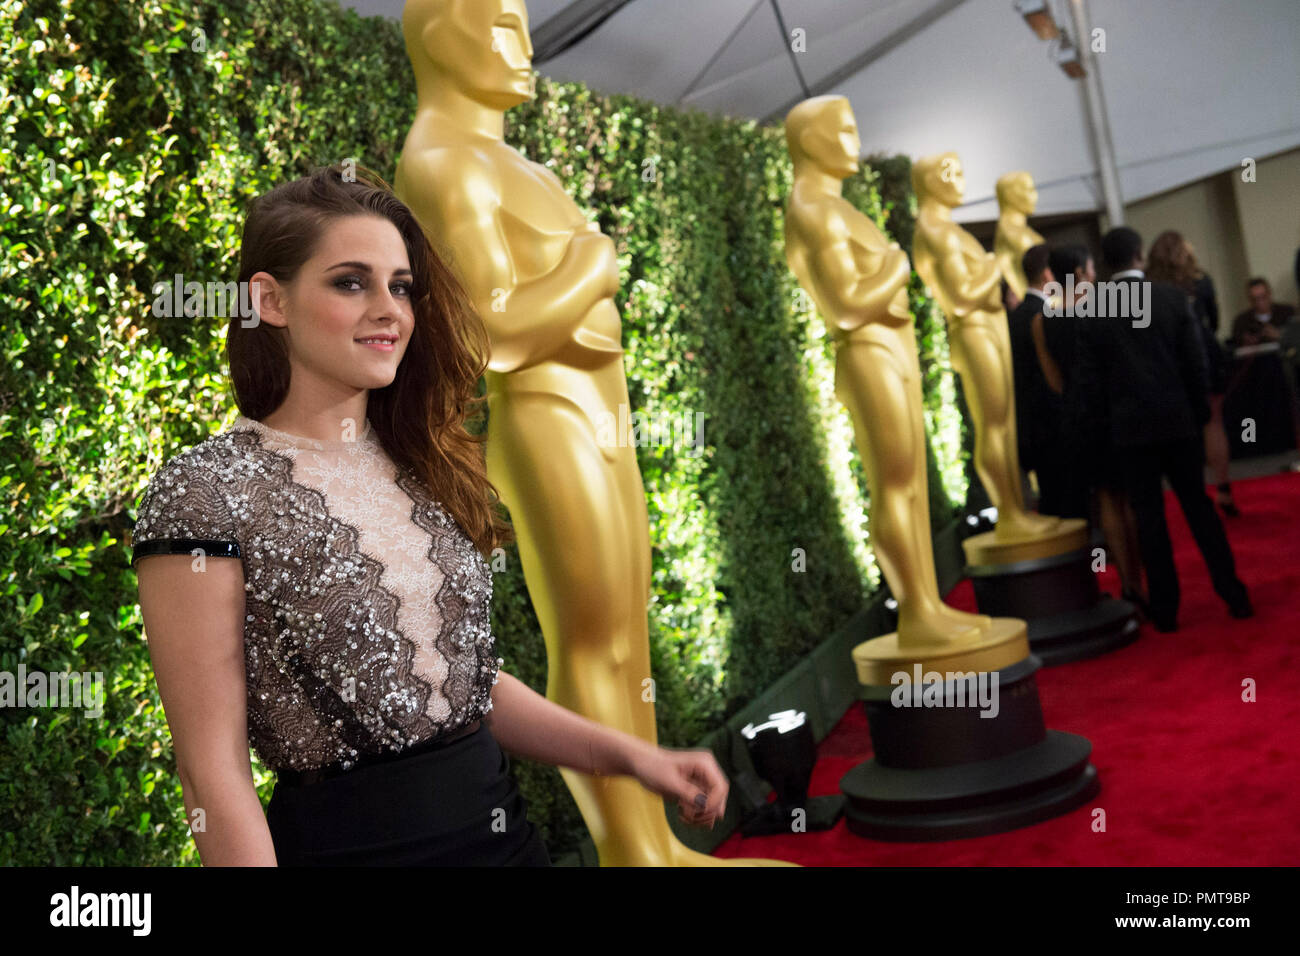 Actress Kristen Stewart, attends the 2012 Governors Awards at The Ray Dolby Ballroom at Hollywood & Highland Center® in Hollywood, CA, Saturday, December 1.  File Reference # 31744_032  For Editorial Use Only -  All Rights Reserved - Stock Image